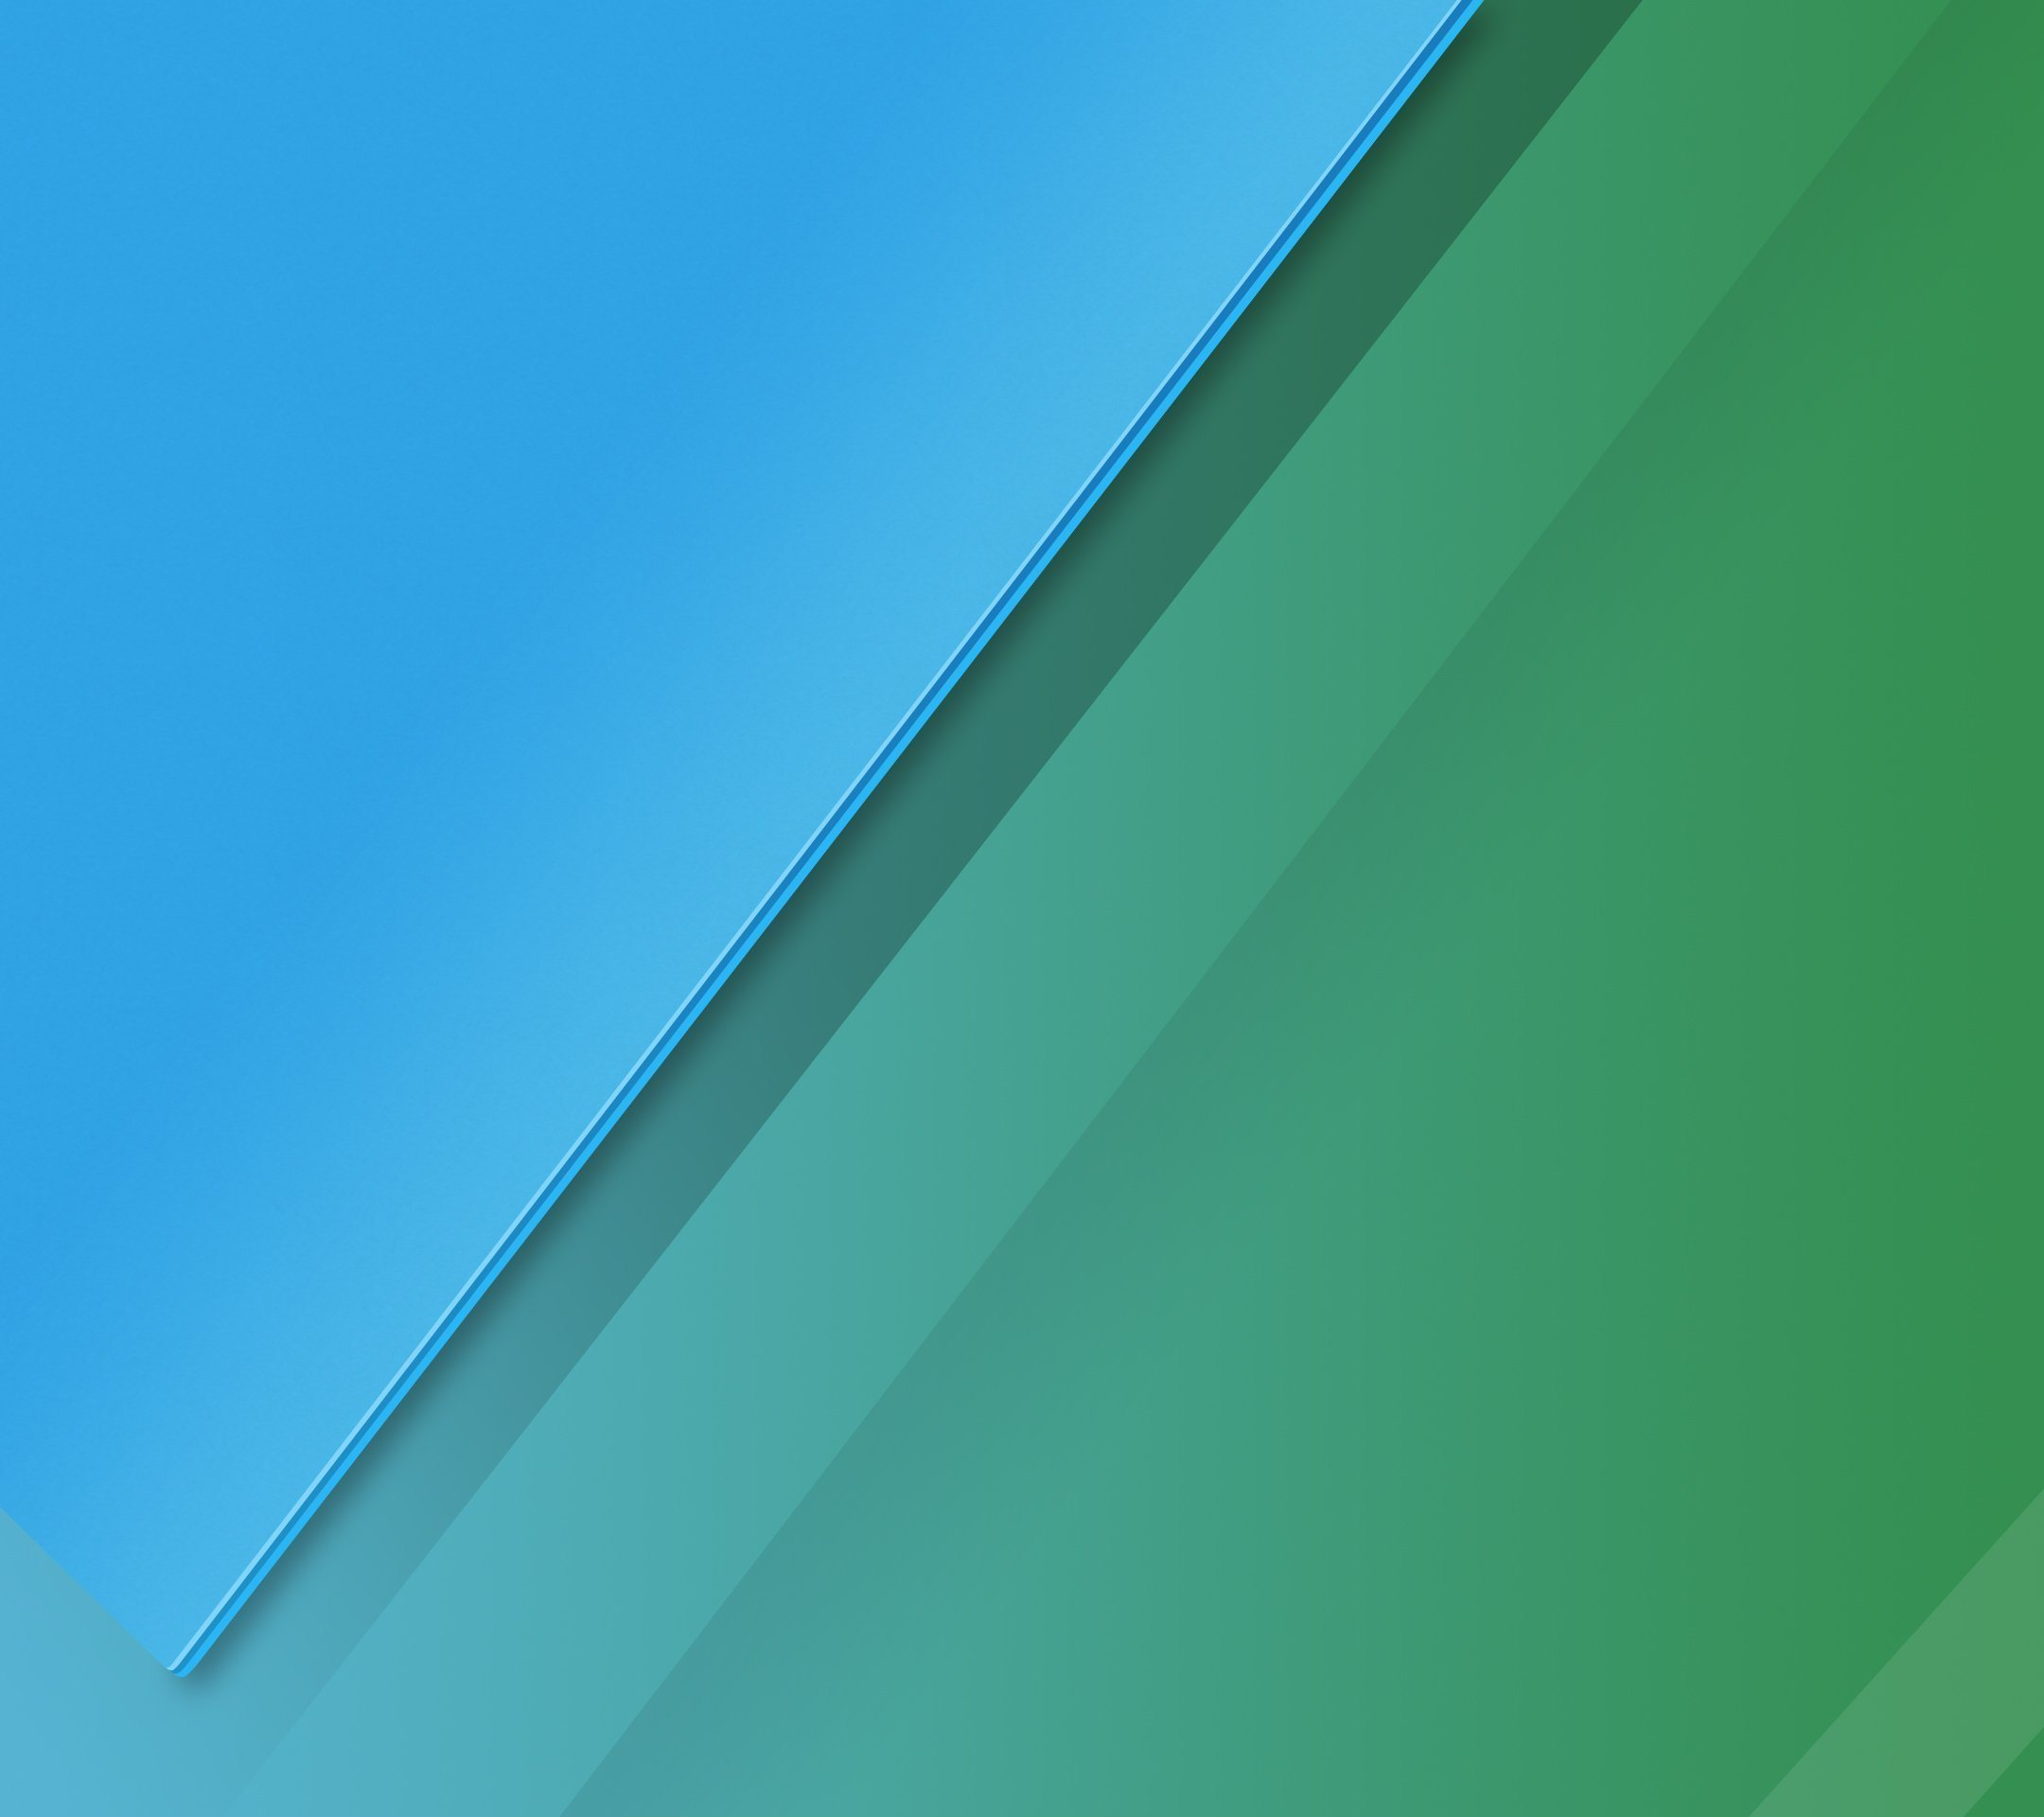 CyanogenMod 13 Default Stock Wallpaper